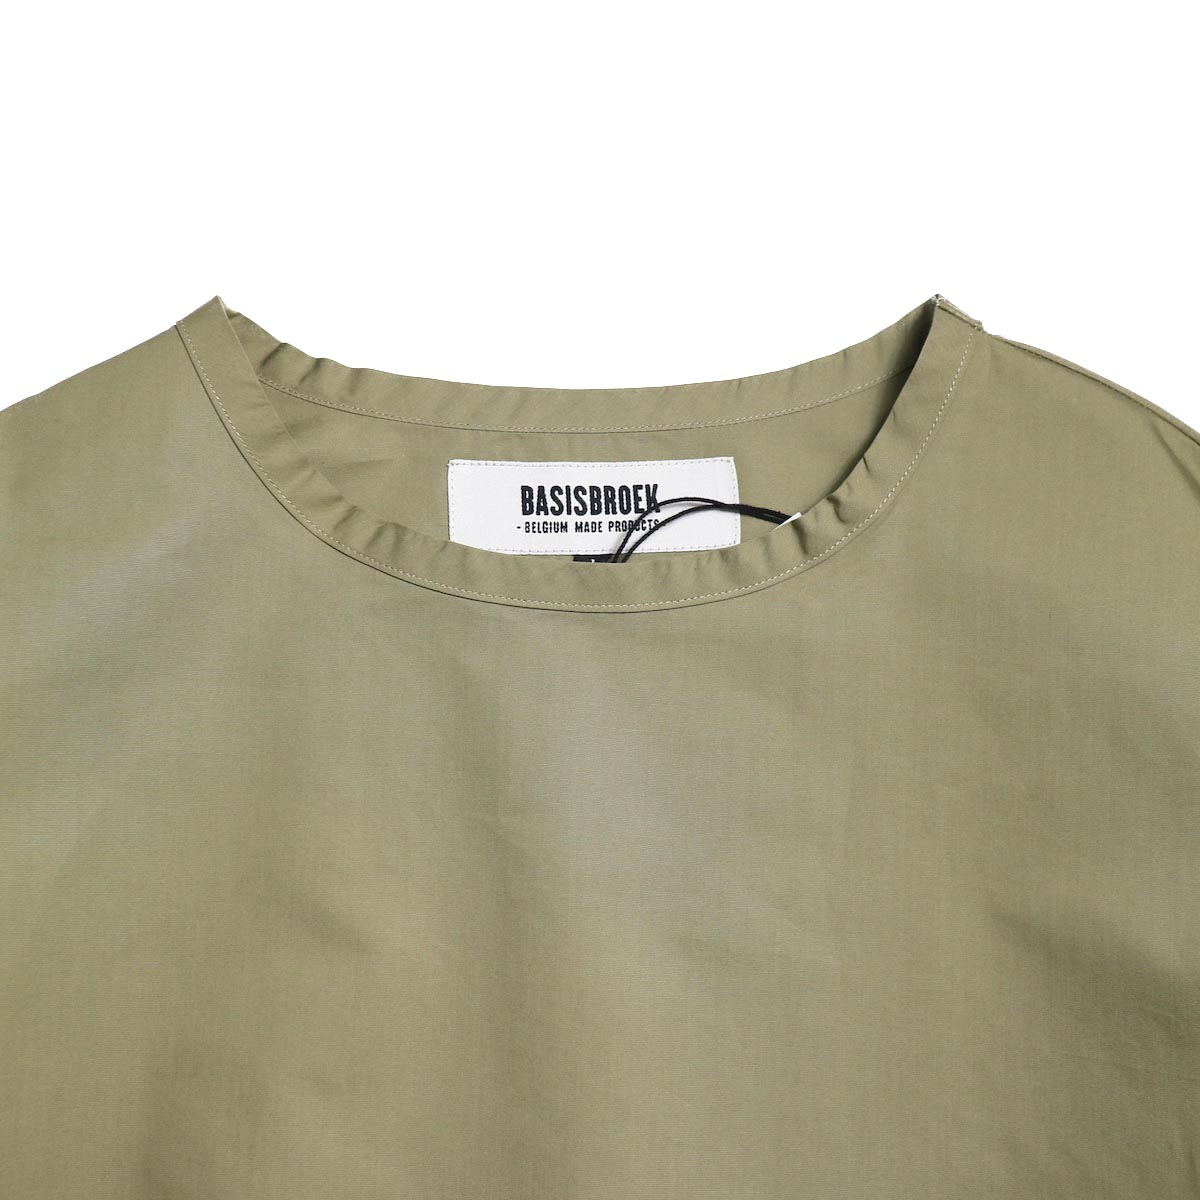 BASISBROEK / REMI -Cotton Silk PO Shirt (CHINO 首元